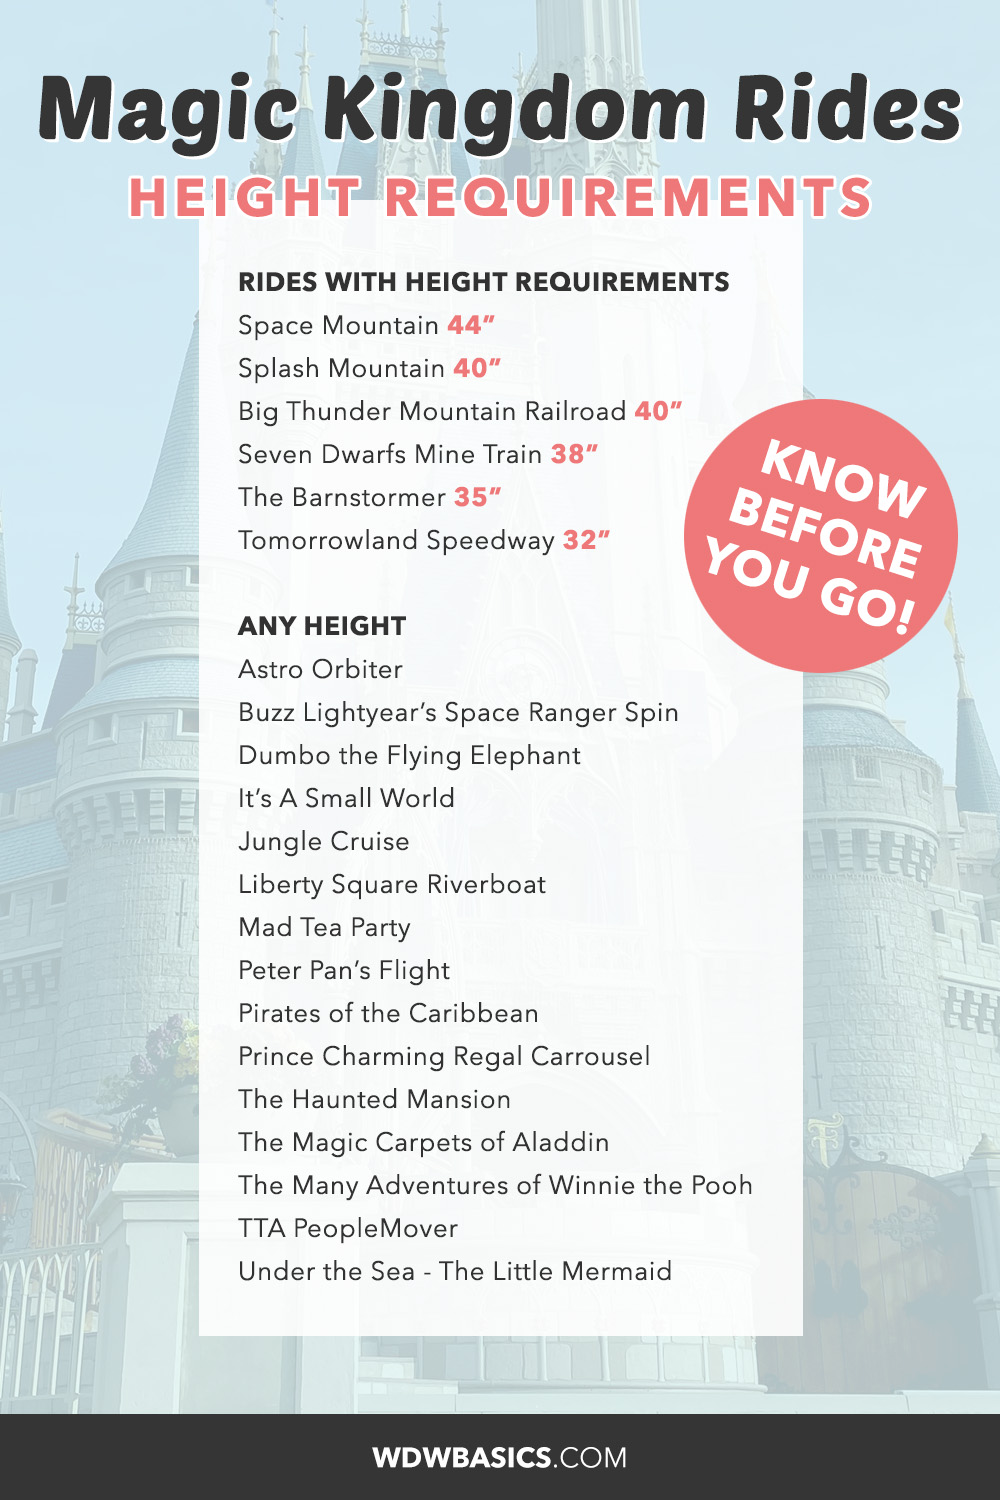 Magic Kingdom Rides height requirements